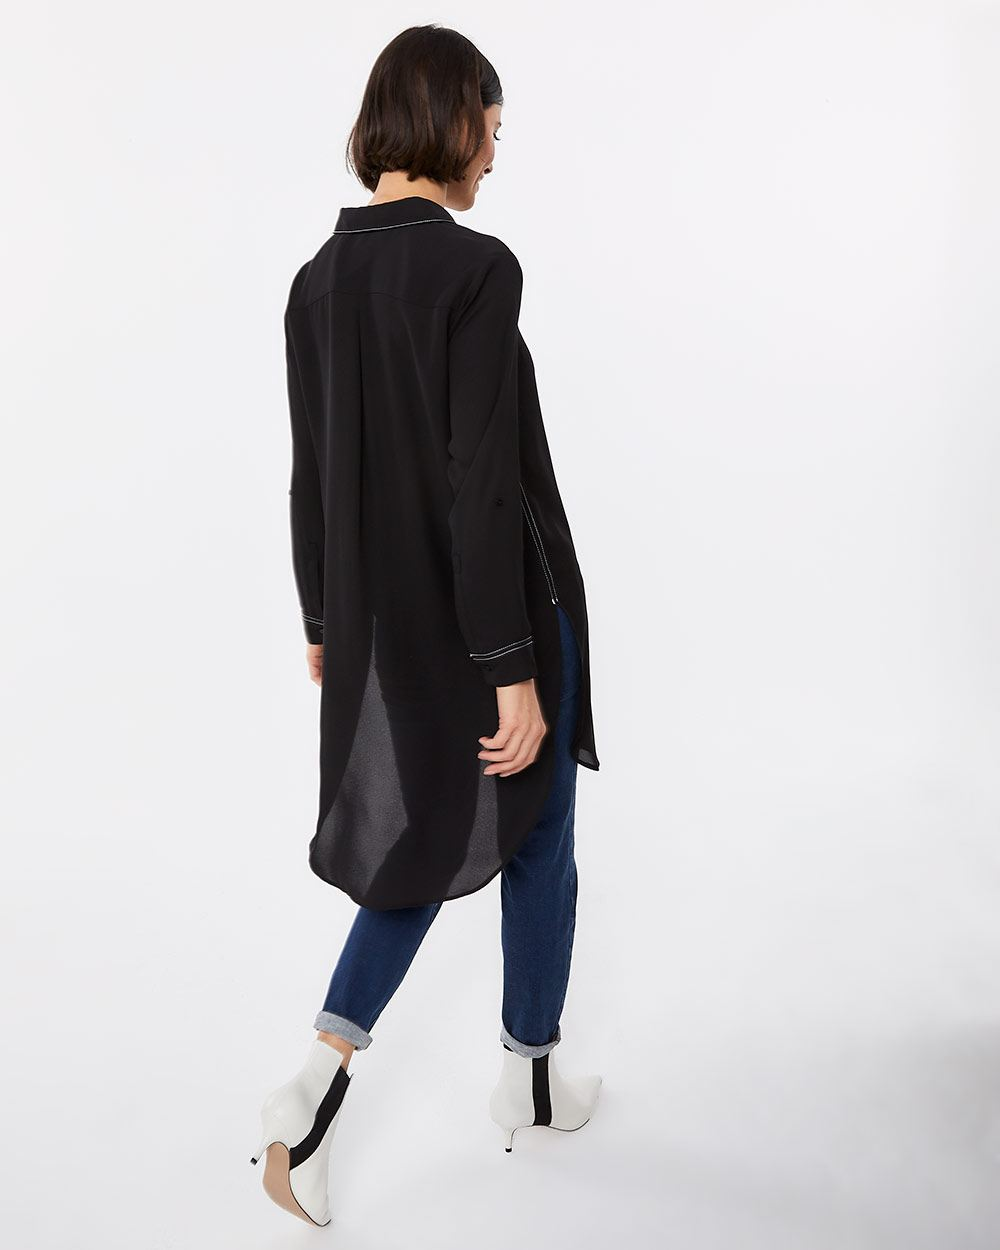 Long Sleeve Tunic with Contrasting Seams - Petite